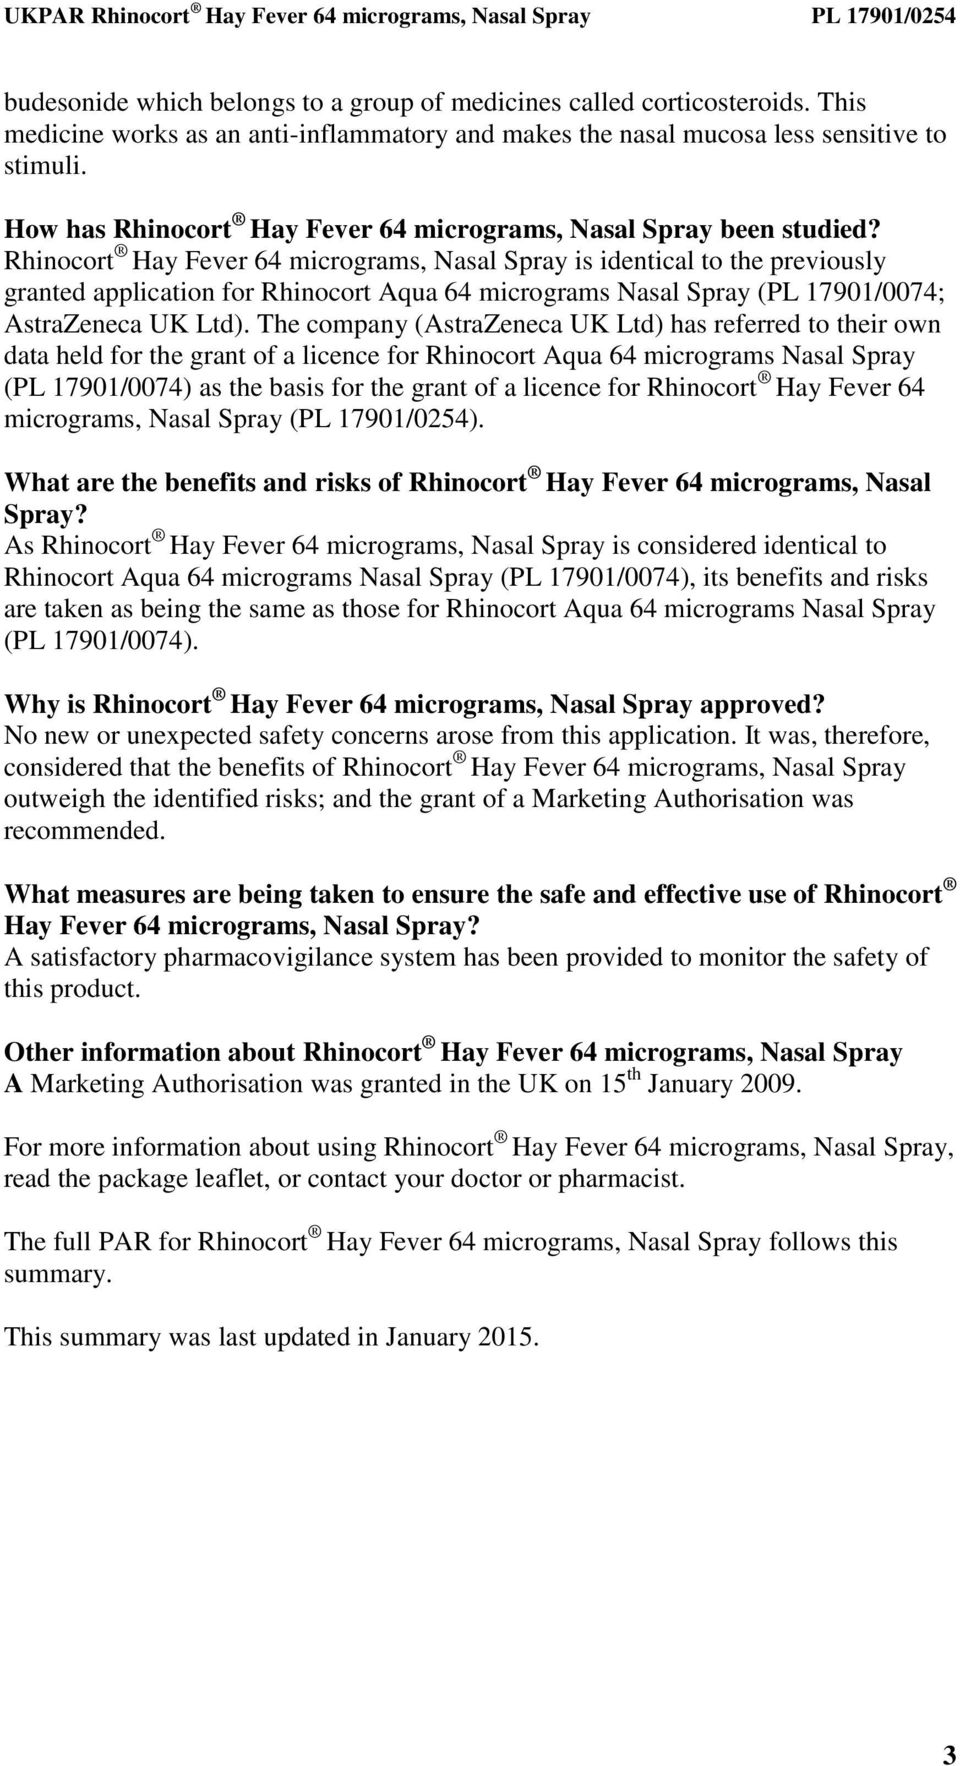 Rhinocort Hay Fever 64 micrograms, Nasal Spray is identical to the previously granted application for Rhinocort Aqua 64 micrograms Nasal Spray (PL 17901/0074; AstraZeneca UK Ltd).